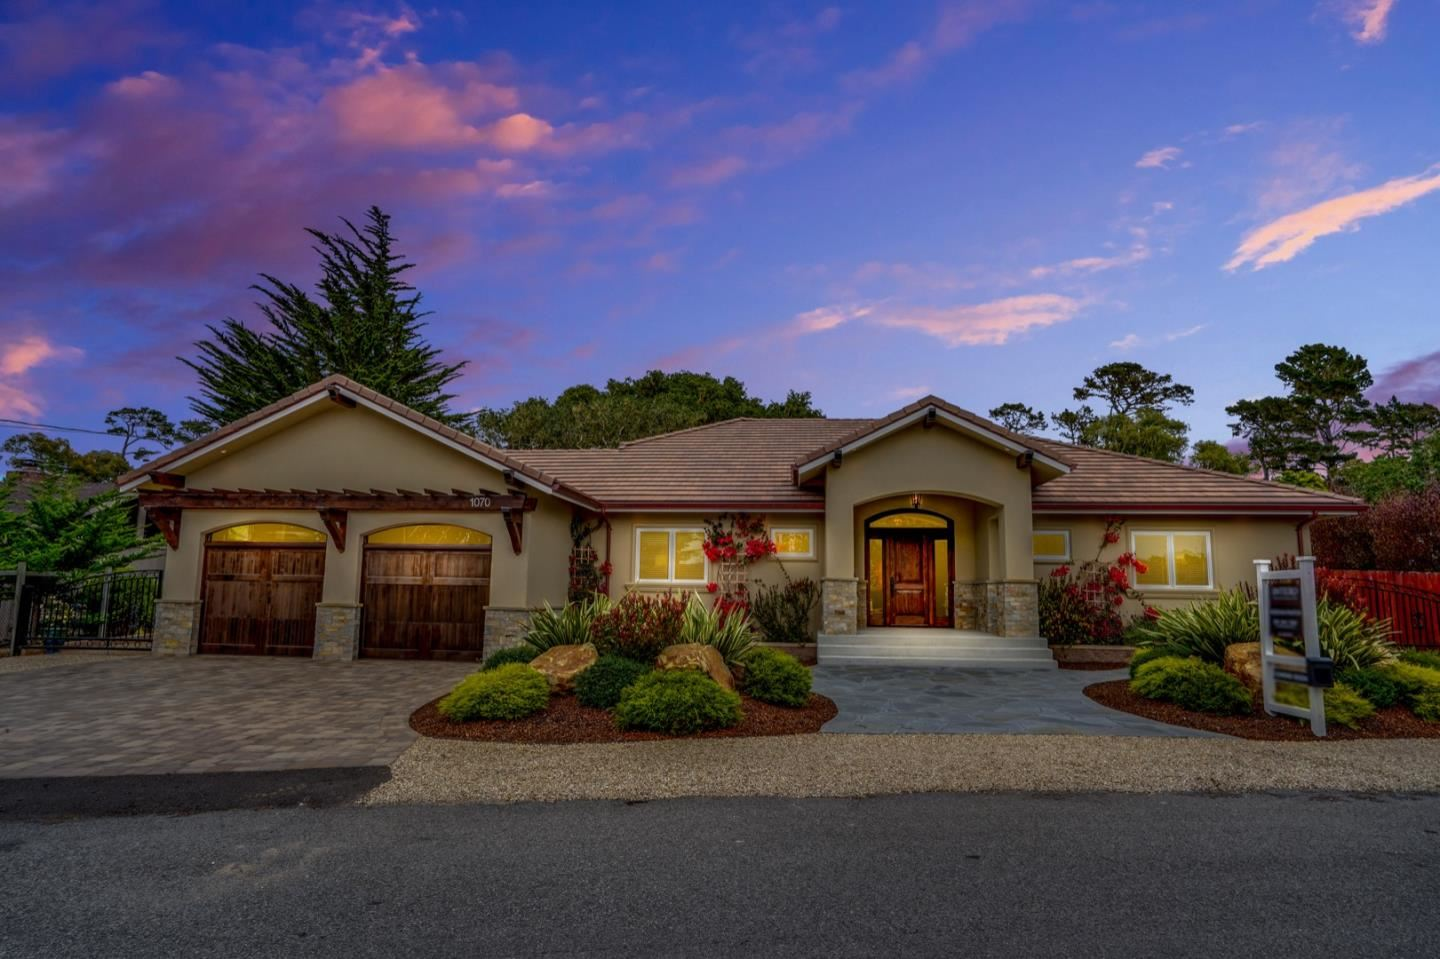 Photo for 1070 Trappers Trail, PEBBLE BEACH, CA 93953 (MLS # ML81854035)